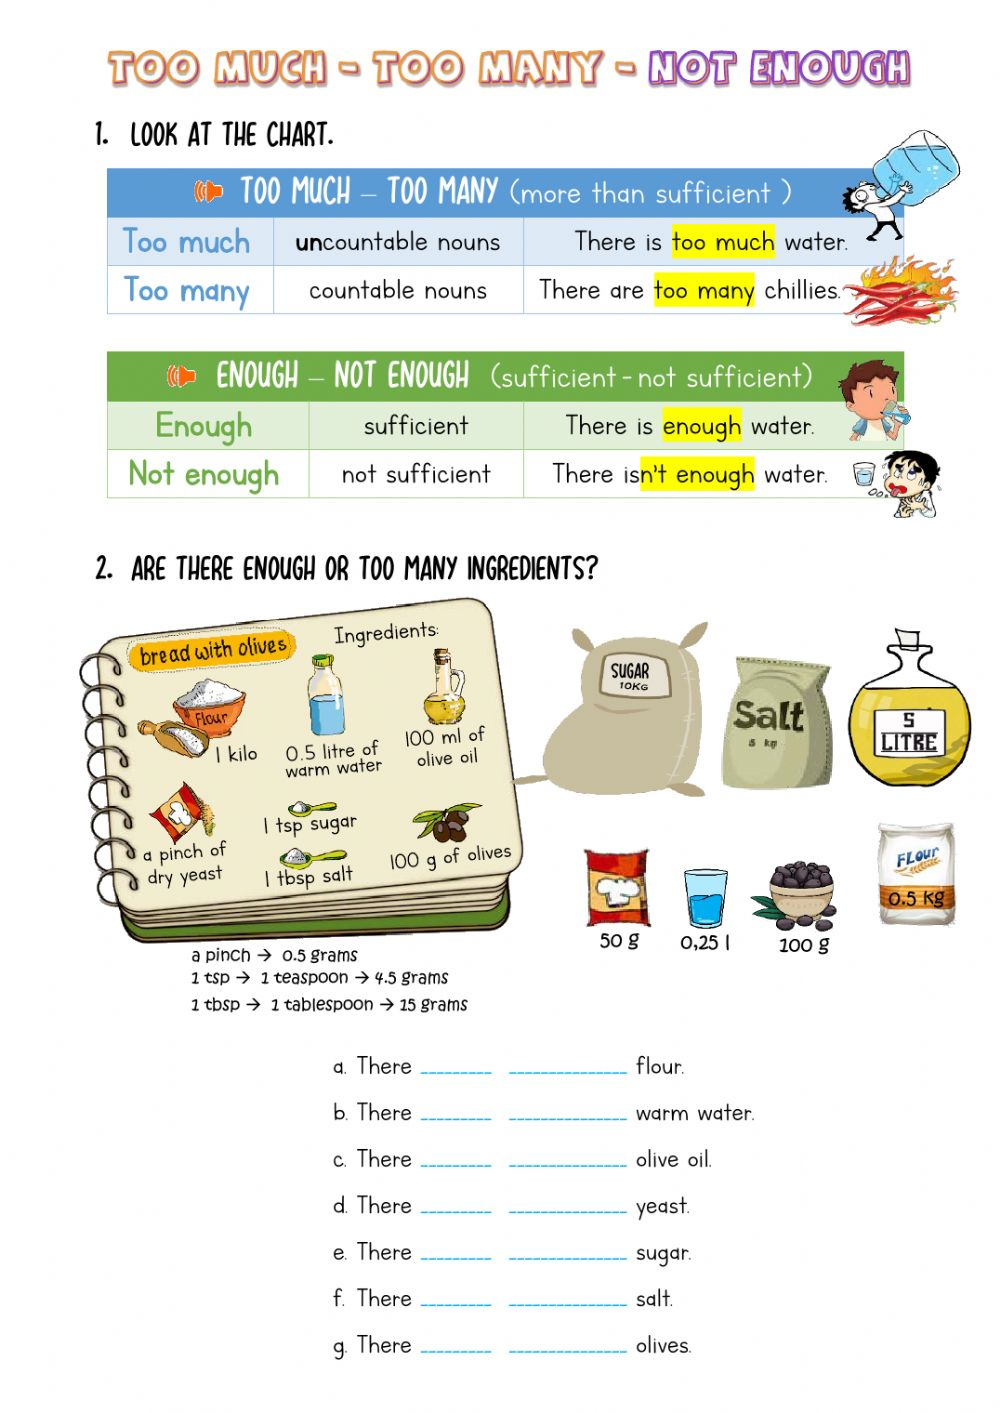 Too much-too many-not enough - Interactive worksheet